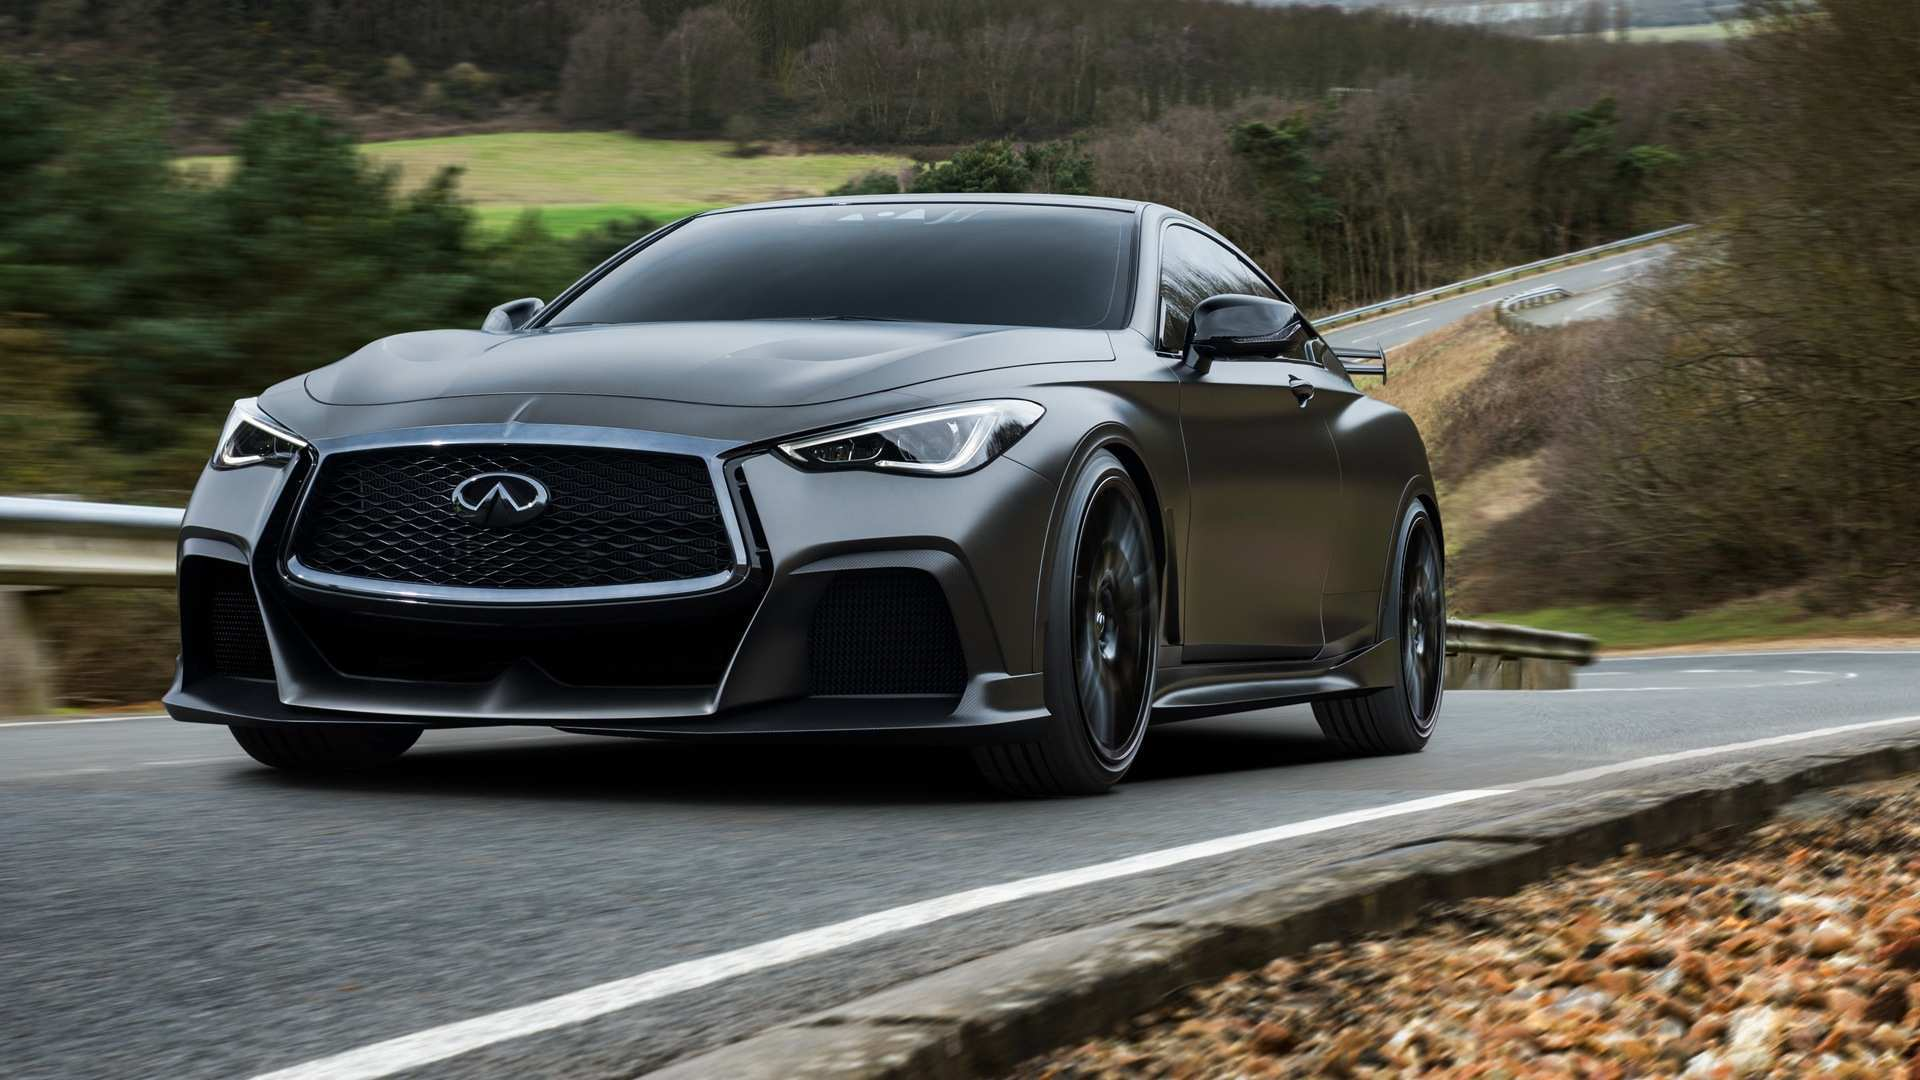 52 Gallery of 2020 Infiniti Q60s Spesification with 2020 Infiniti Q60s